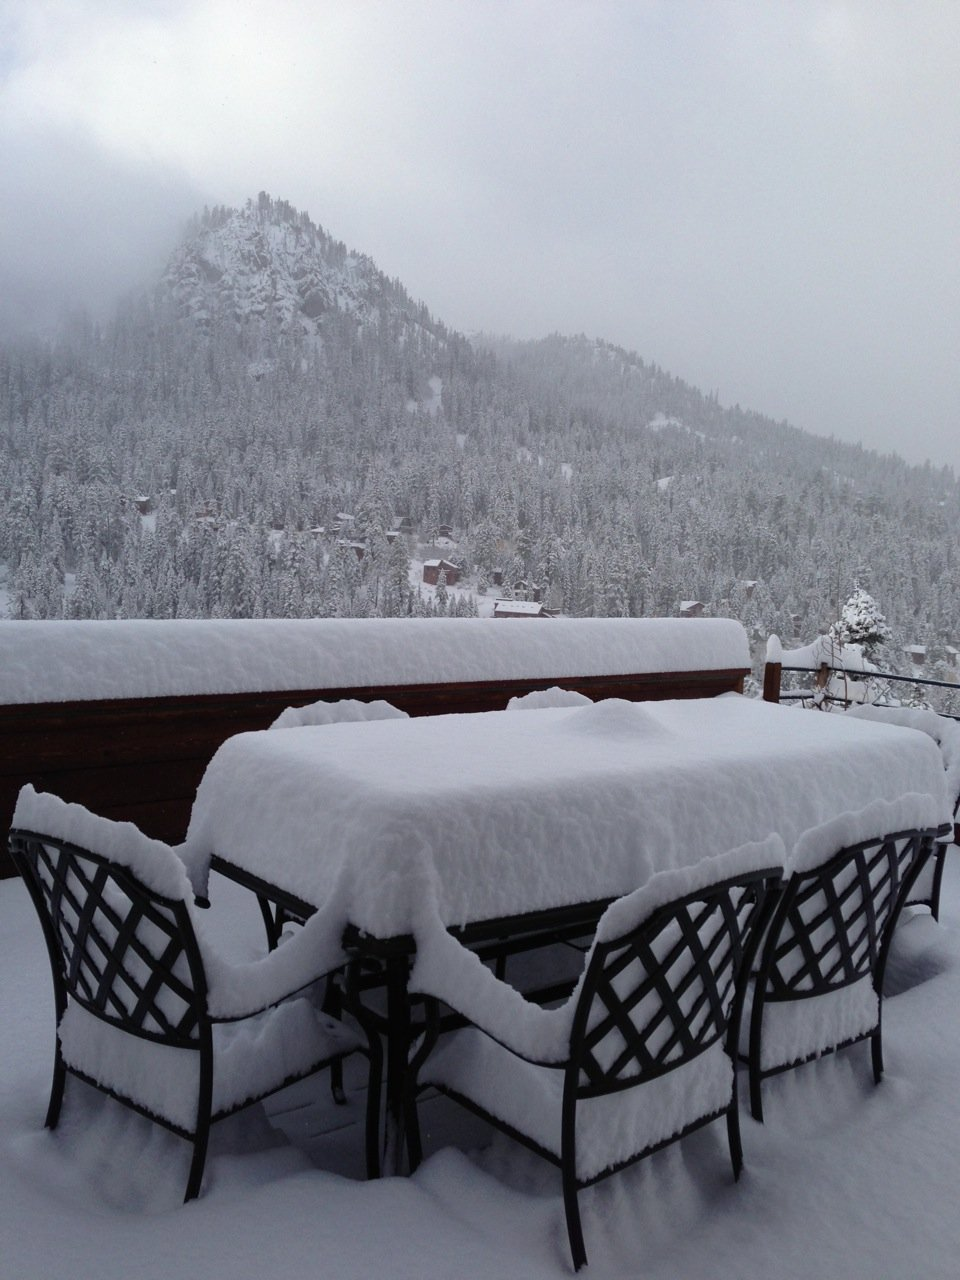 First snowfall of the season back home in Alpine Meadows, October 26th, 2013.  - ©Travis Ganong